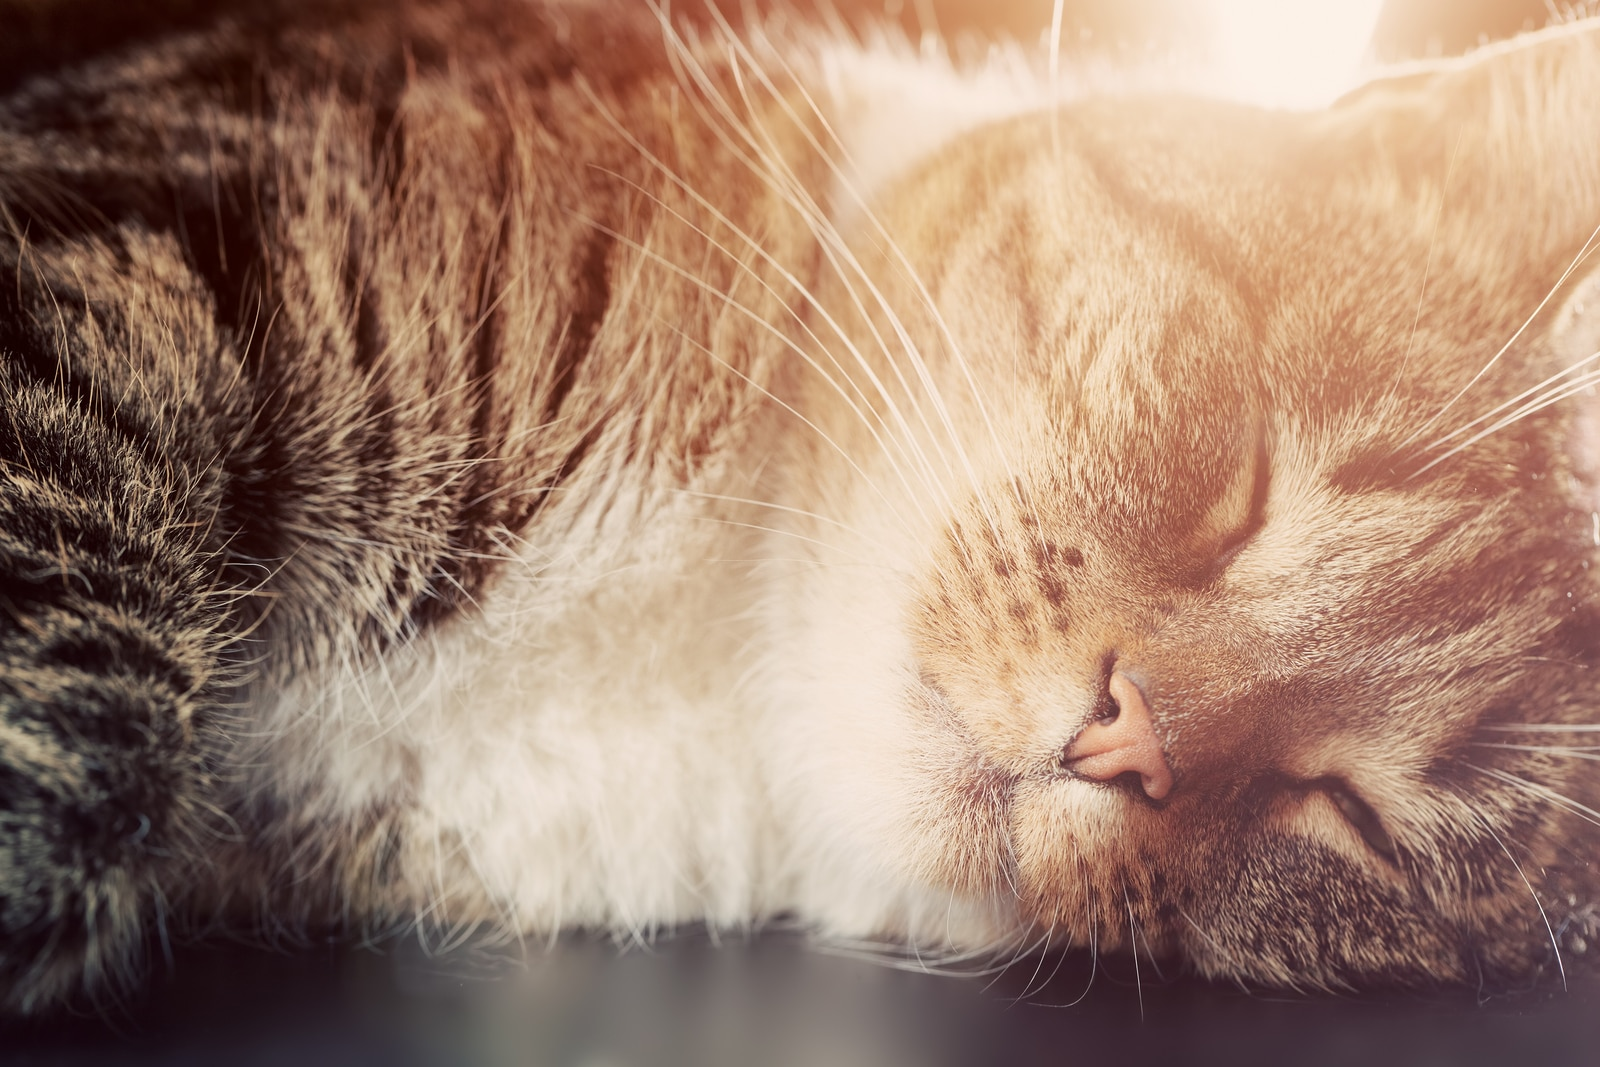 Striped cat sleeps with sunrays glowing on her.